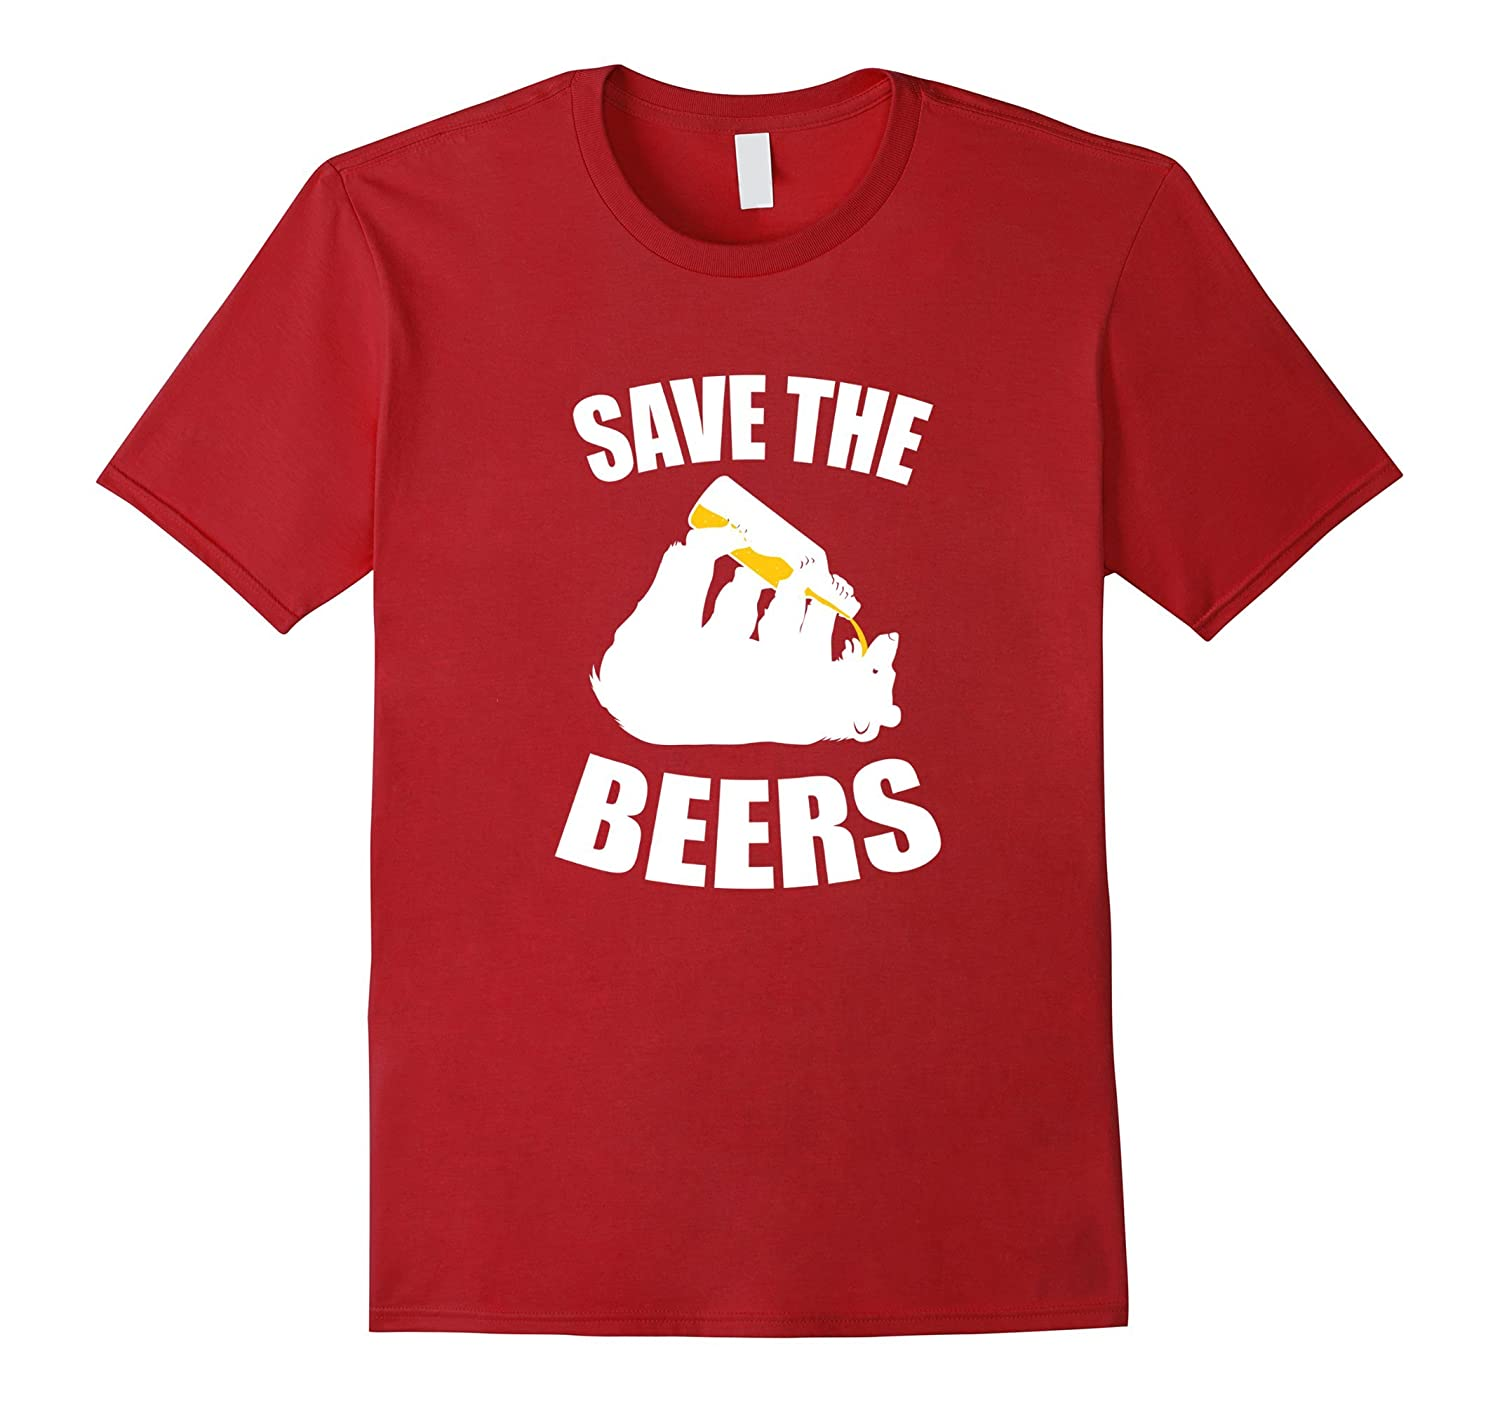 Save The Bears – Funny Parody T-Shirt for Men and Women